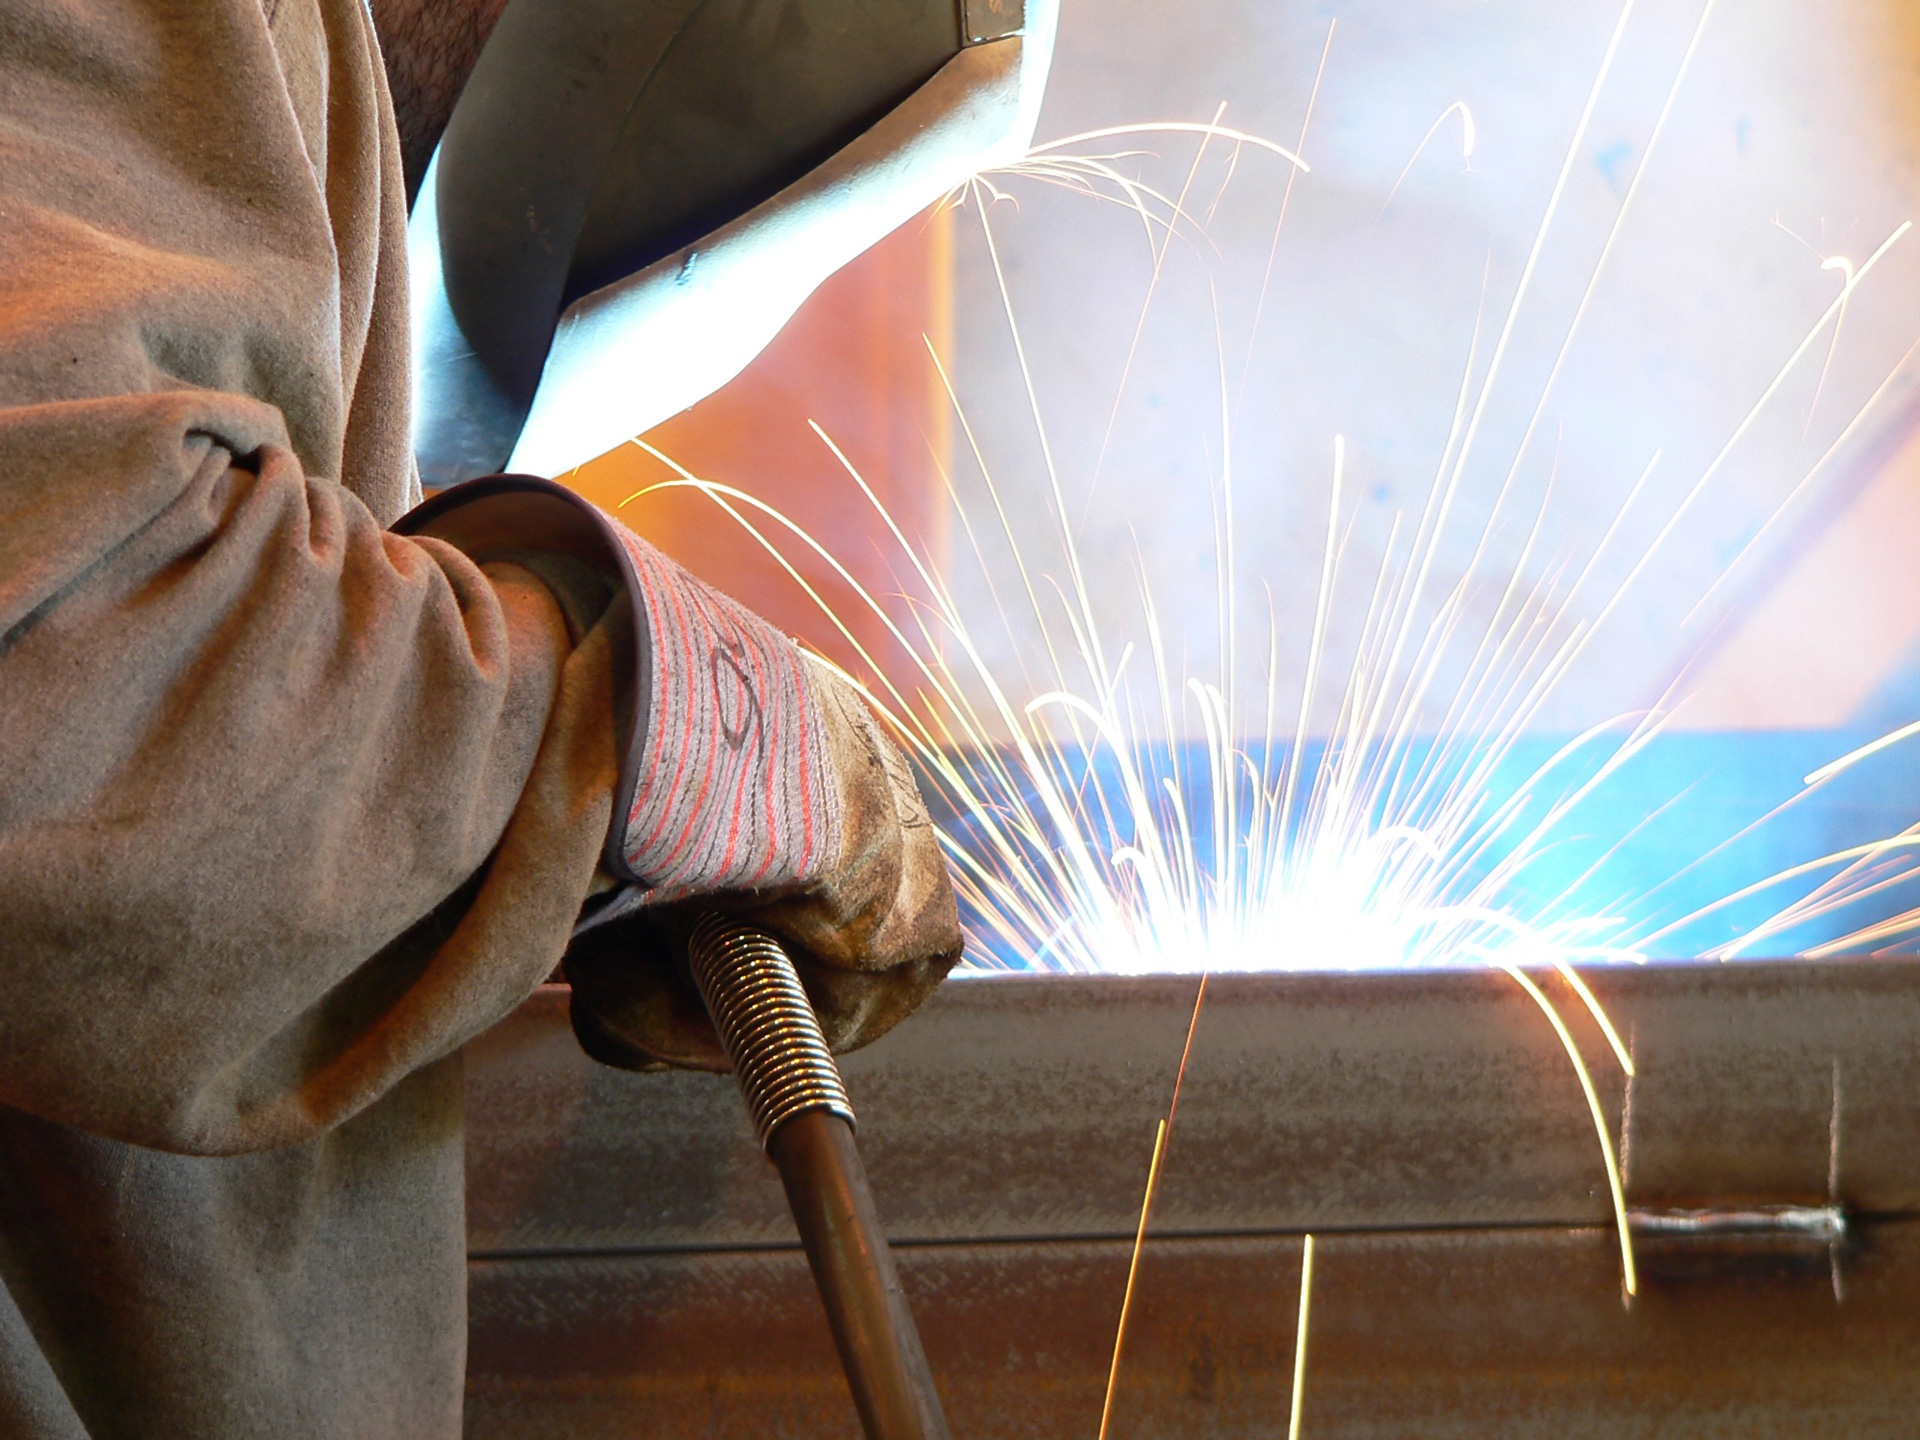 Metal Fabrication Near Me Minneapolis MN